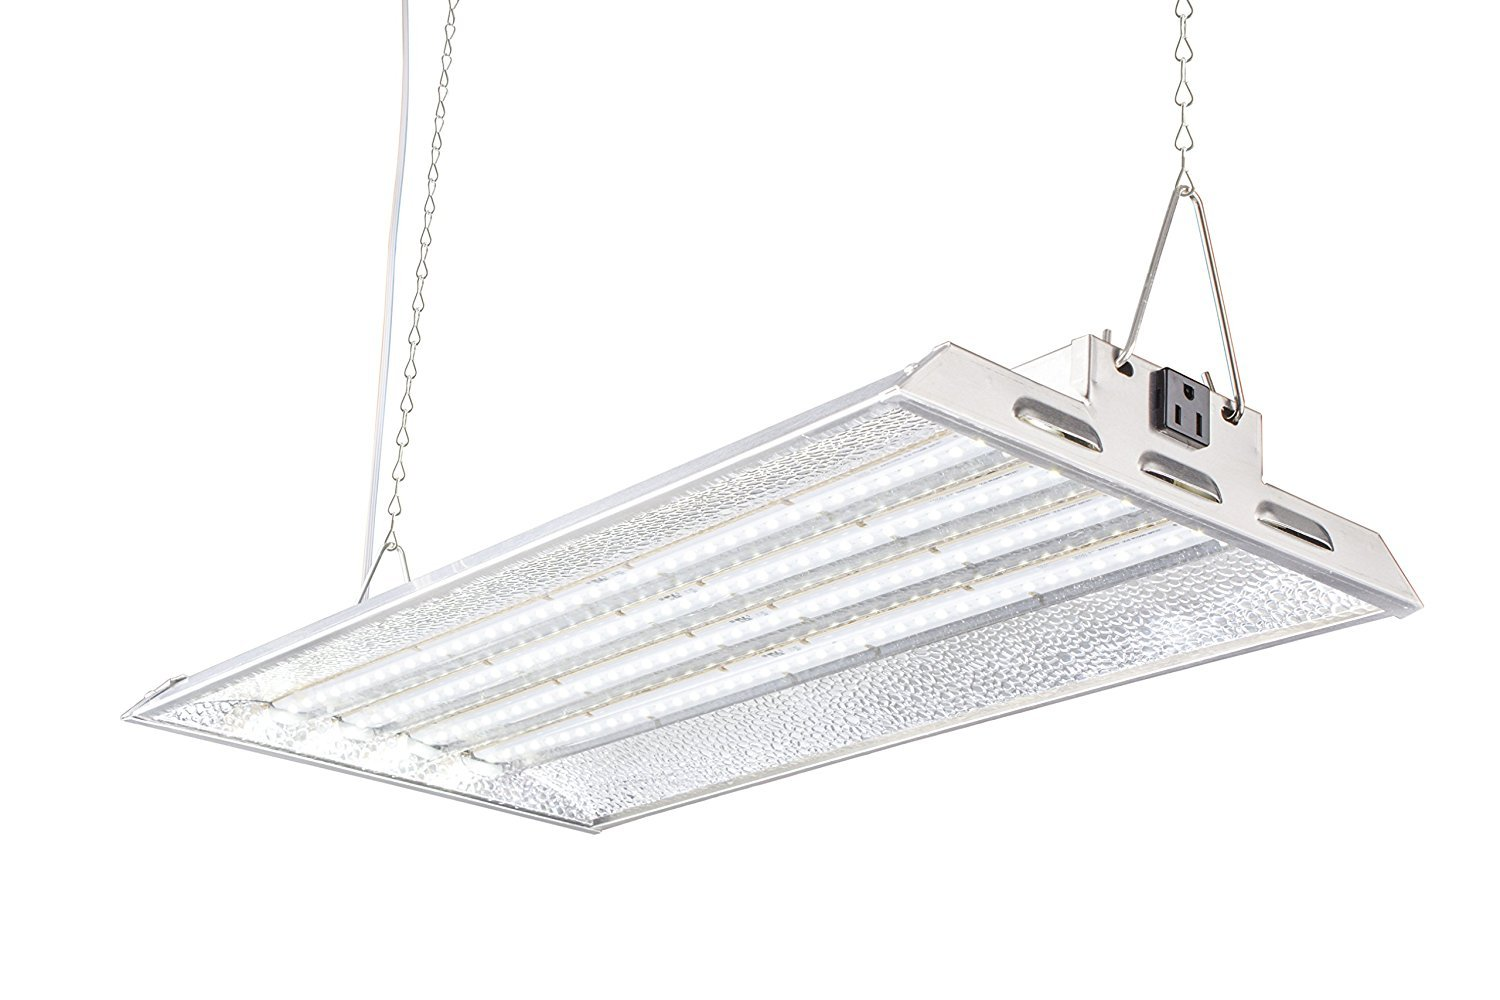 Durolux DLED824W LED Grow Light | 2 Feet x 1 Foot Real 50W LED with White 5500K FullSun Spectrum and 10000 Lux Great for Seeding and Veg Growing! Over 50% EnergySaving!